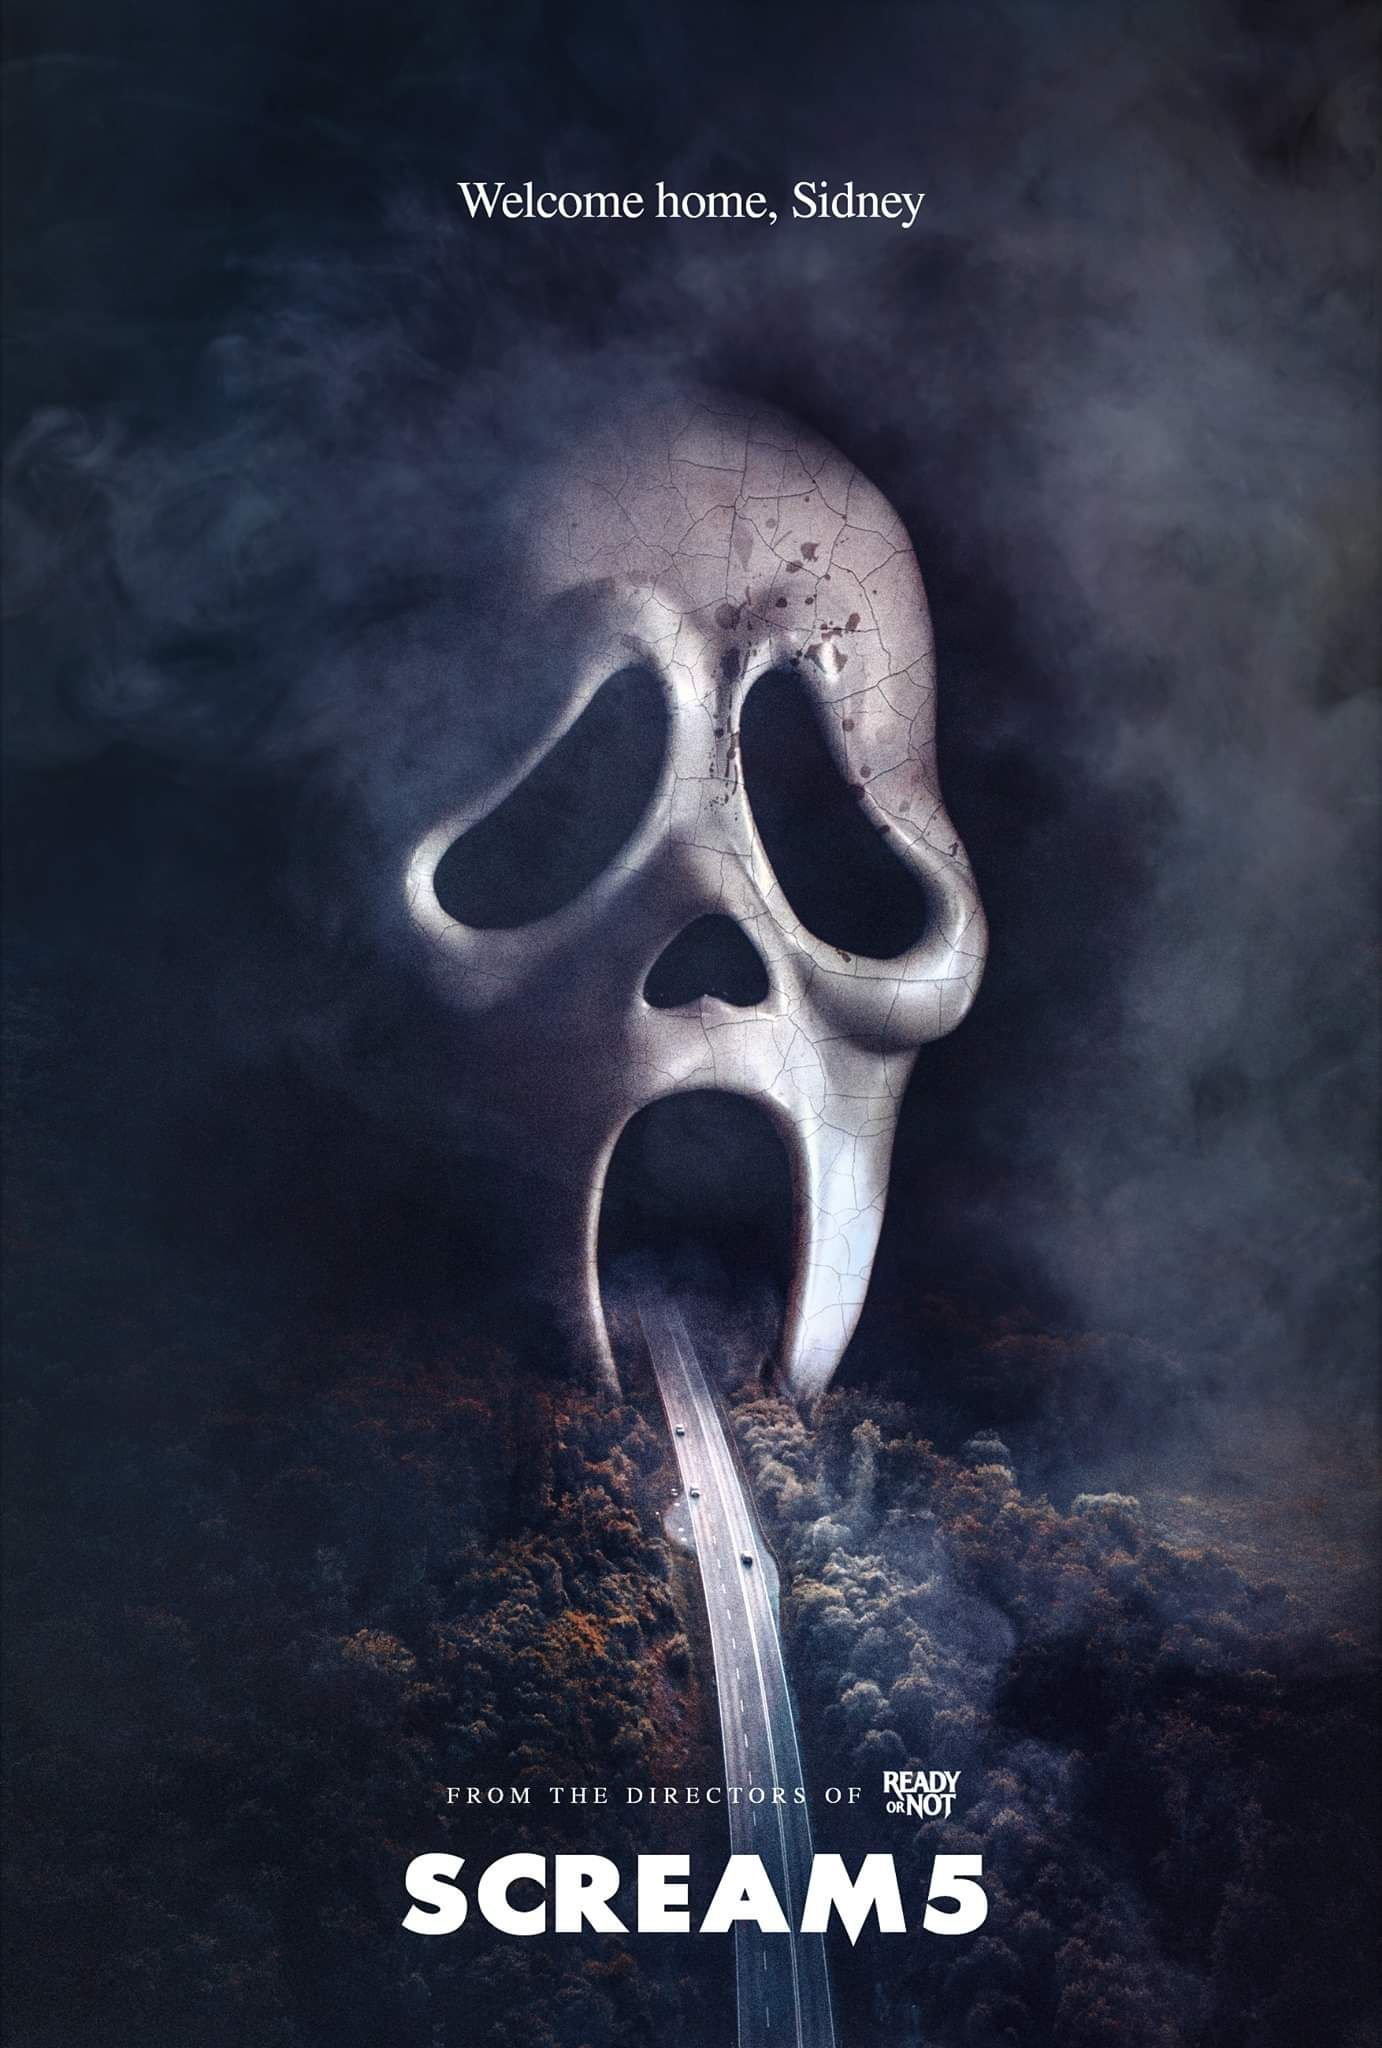 Scream 5 2021 1382 2048 By Colm Geoghegan Scream Movie Horror Movie Art Horror Movie Icons